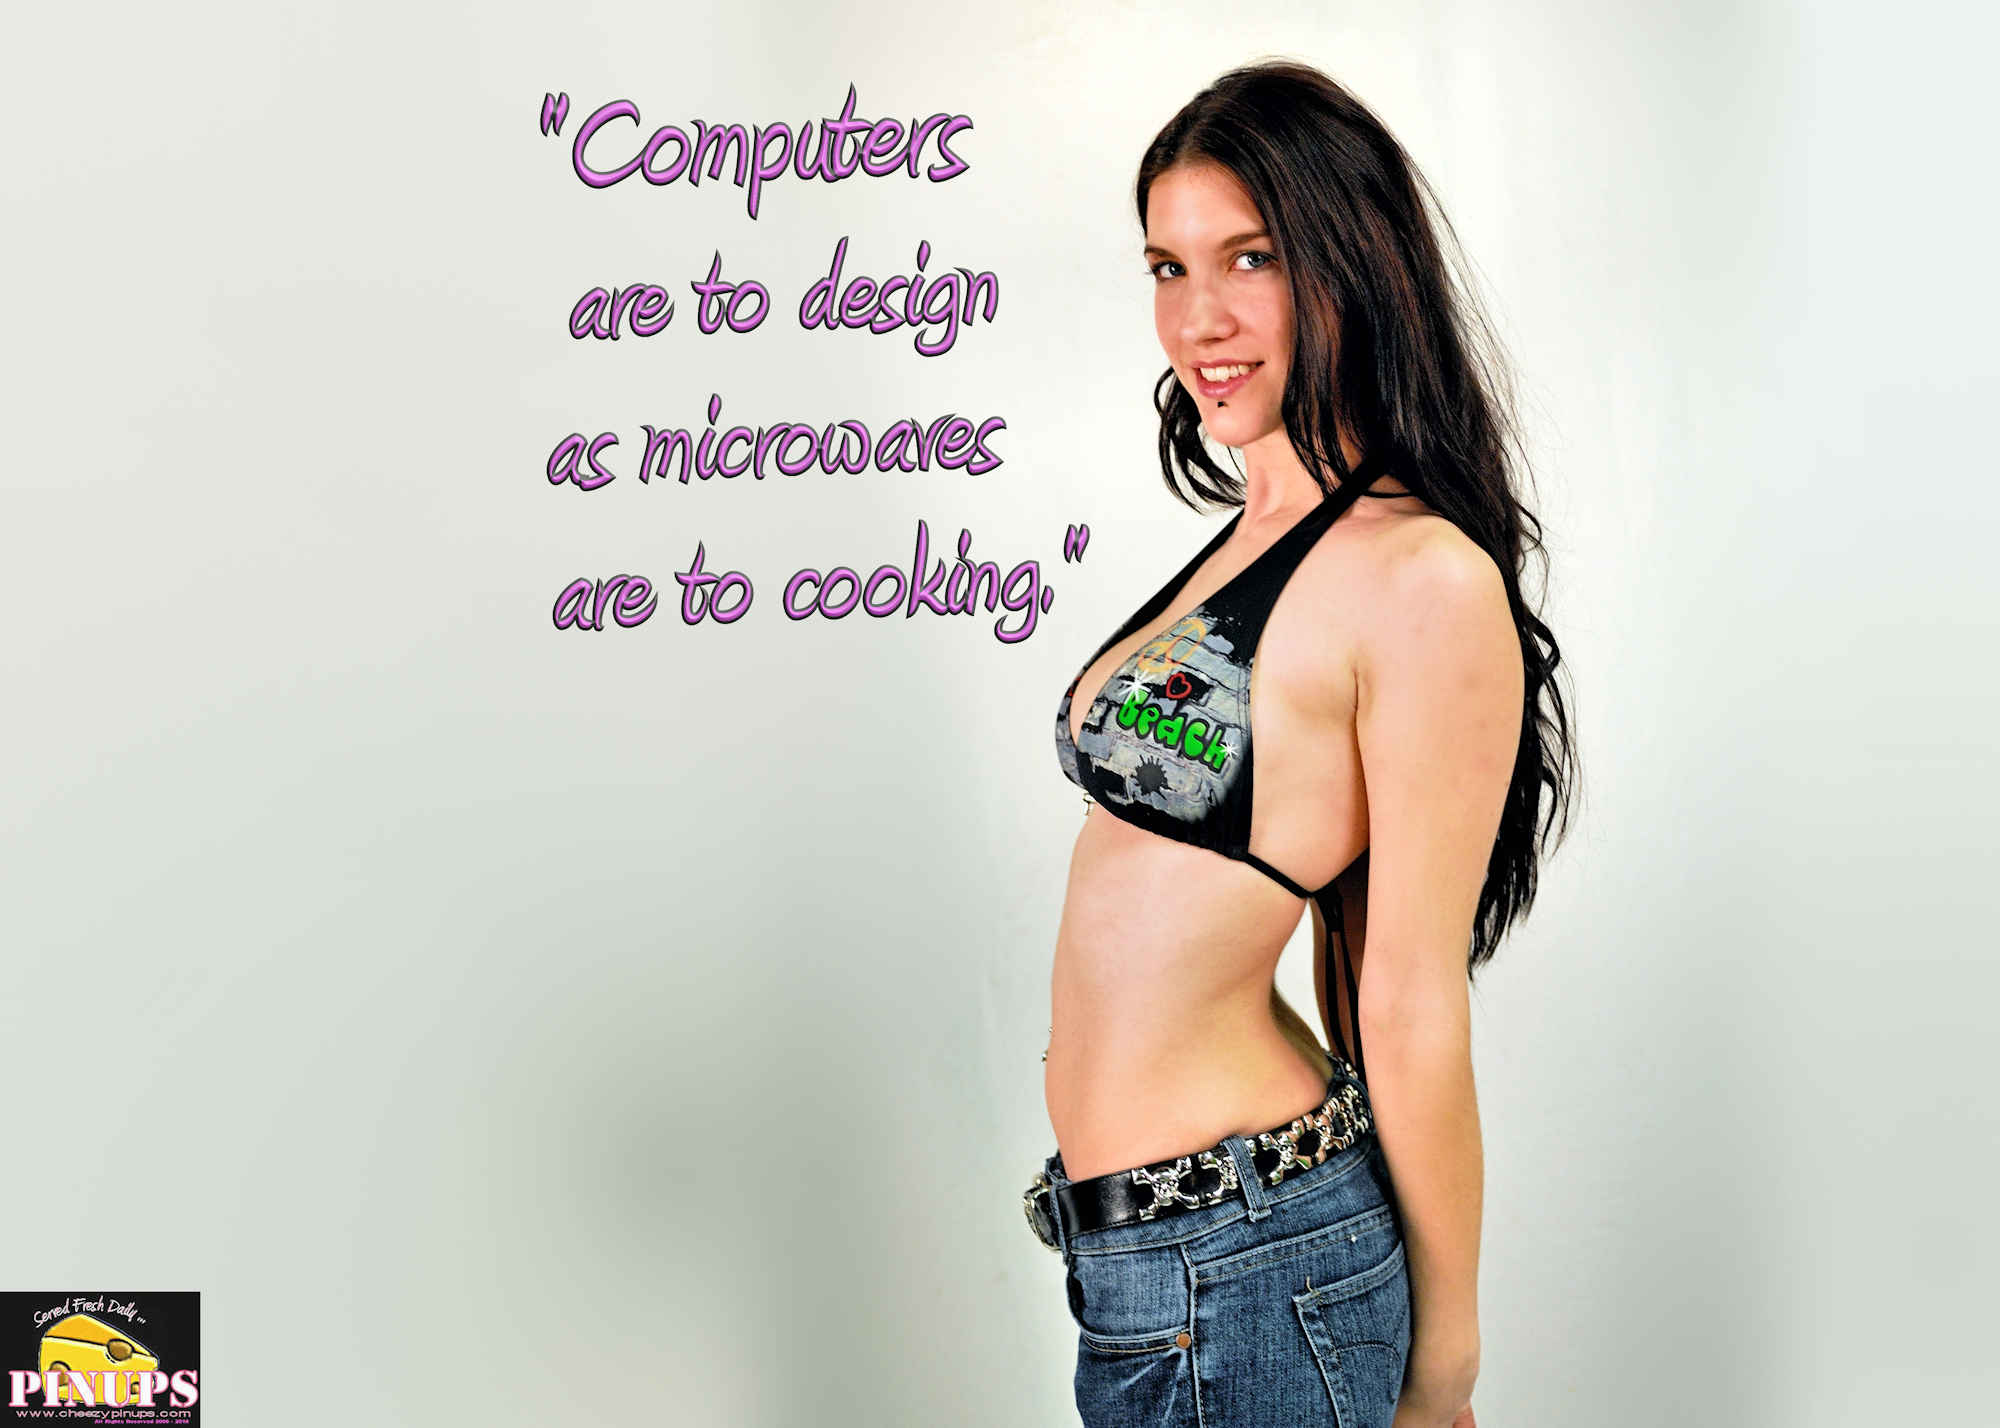 """Cheezy Pinup - June 26, 2018   """"Computers are to design as microwaves are to cooking."""" - Milton Glaser Model: Sabrina Jayde"""